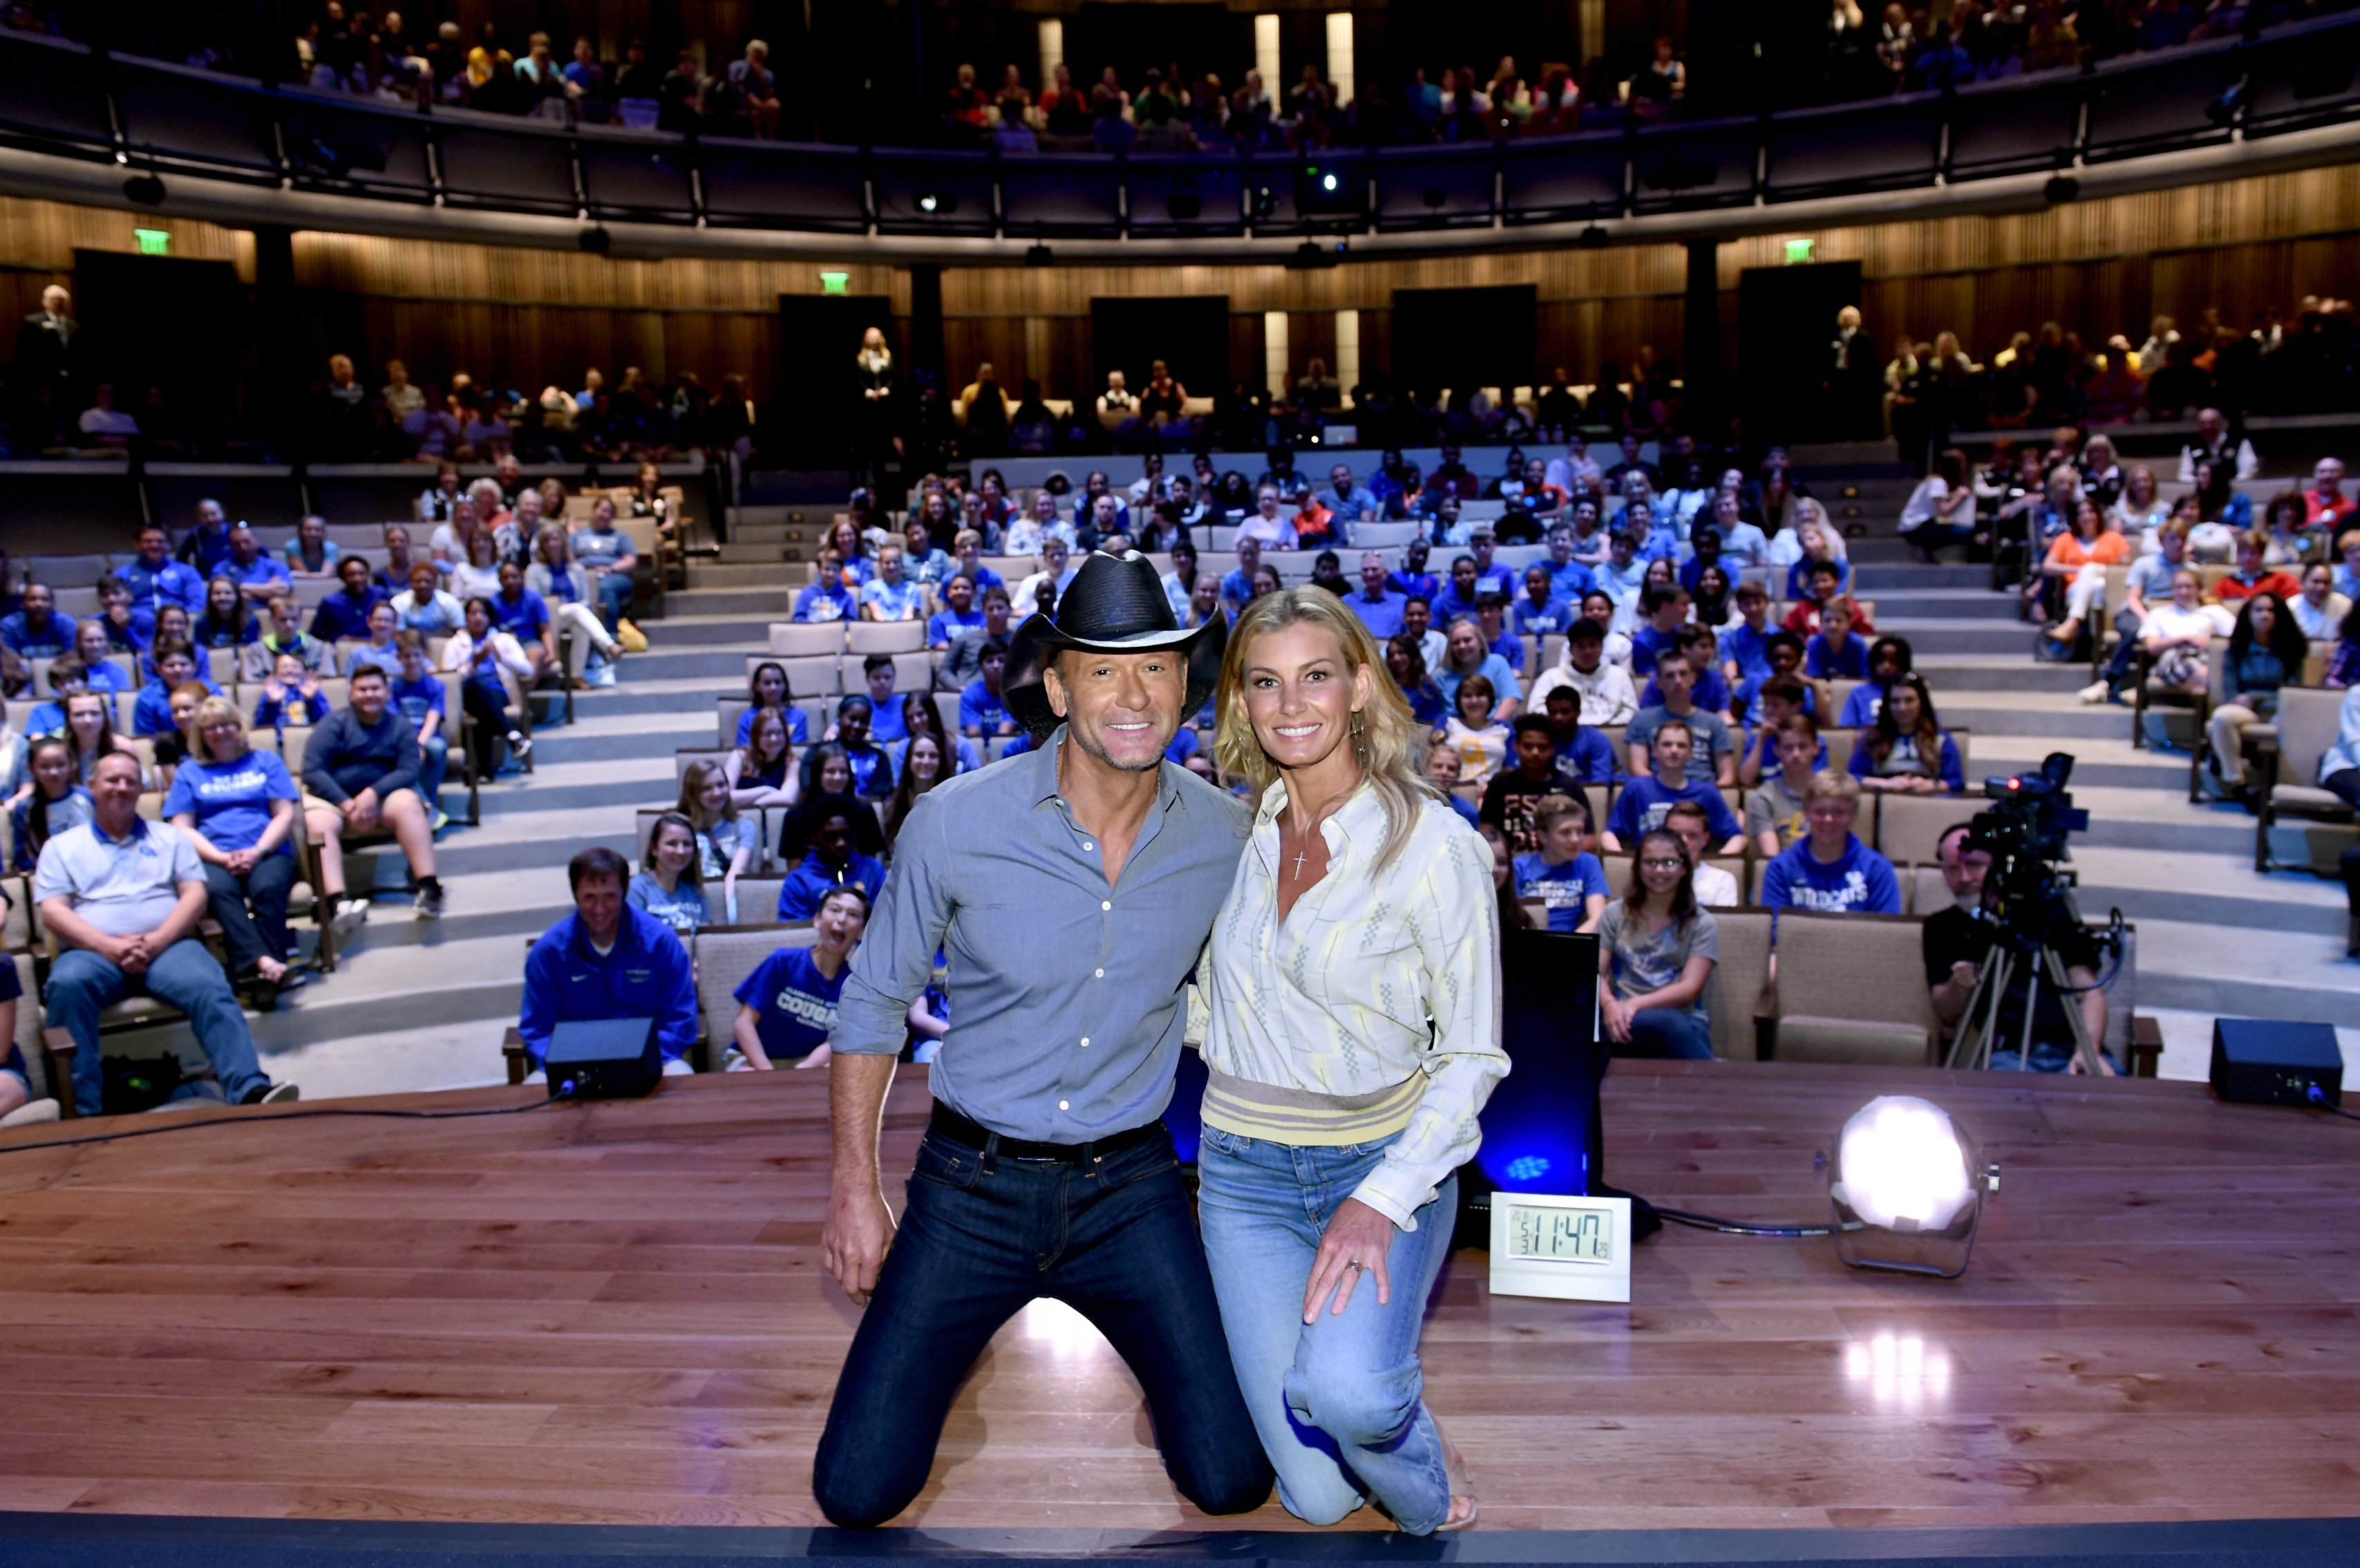 Faith Hill and Tim McGraw partook in a Country Music Hall of Fame music program in Nashville, May, 2018.   Photo: Getty Images.